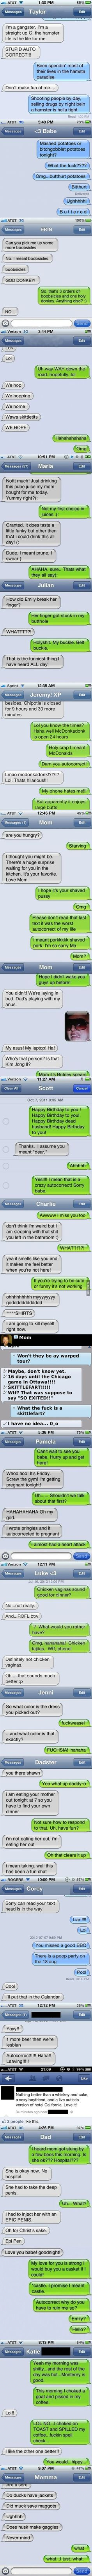 Funniest AutoCorrects Of 2012 on http://seriouslyforreal.com/funny/funniest-autocorrects-of-2012/